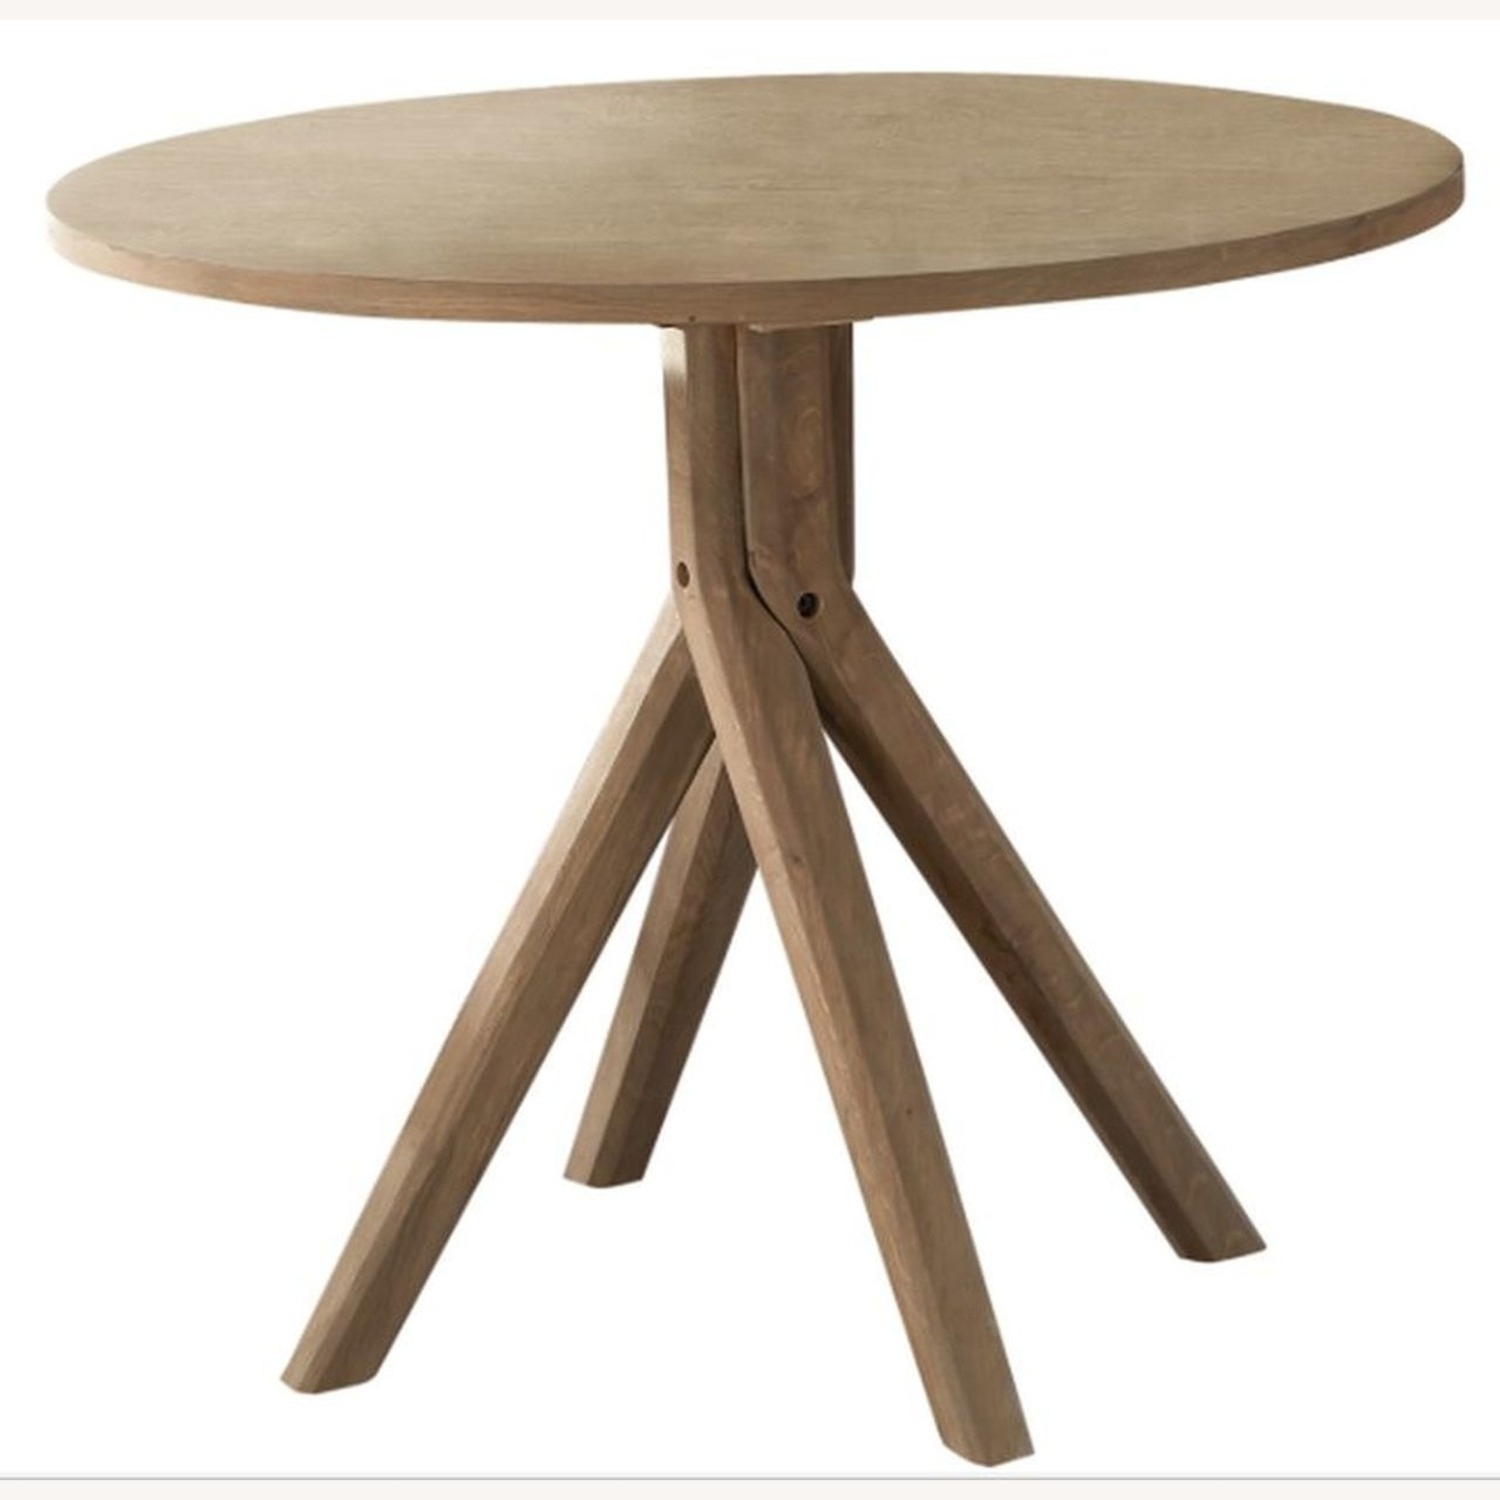 Classic Round Dining Table In Solid White Oak - image-1